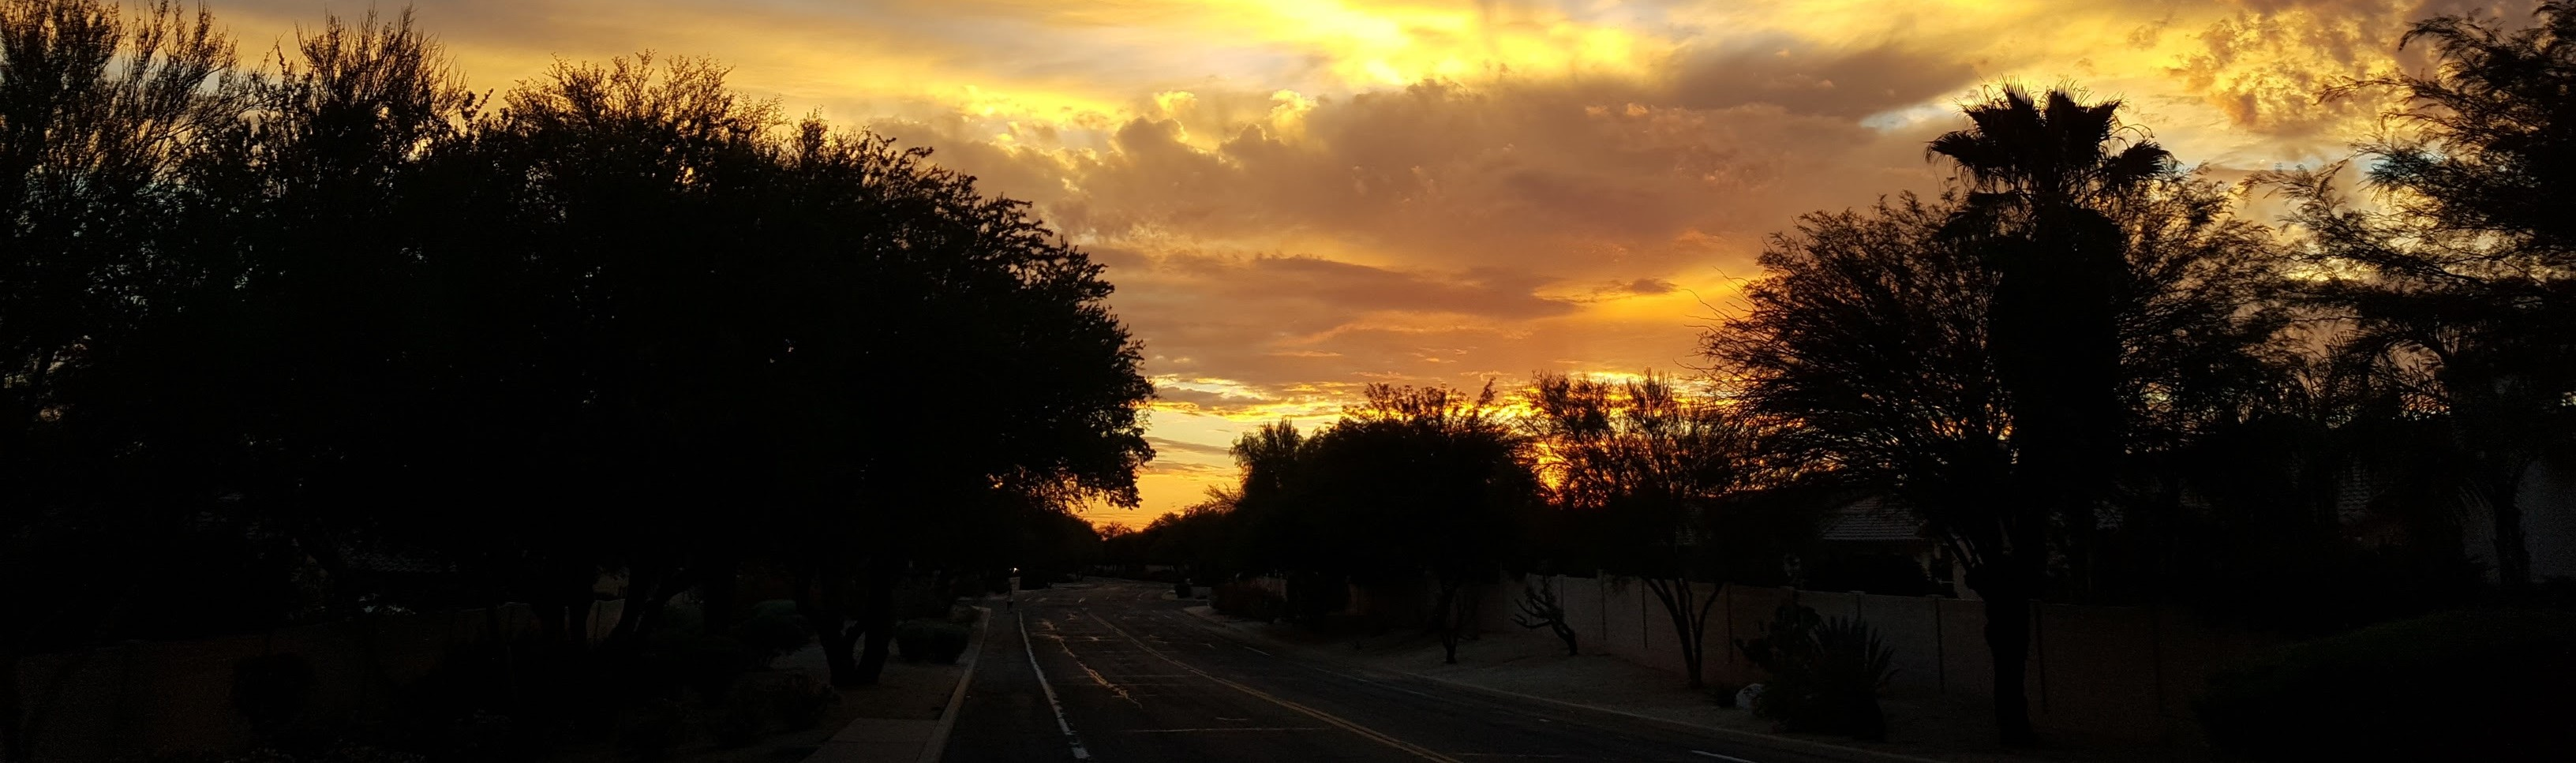 Sunset in Surprise, Arizona - CarDonations4Cancer.org